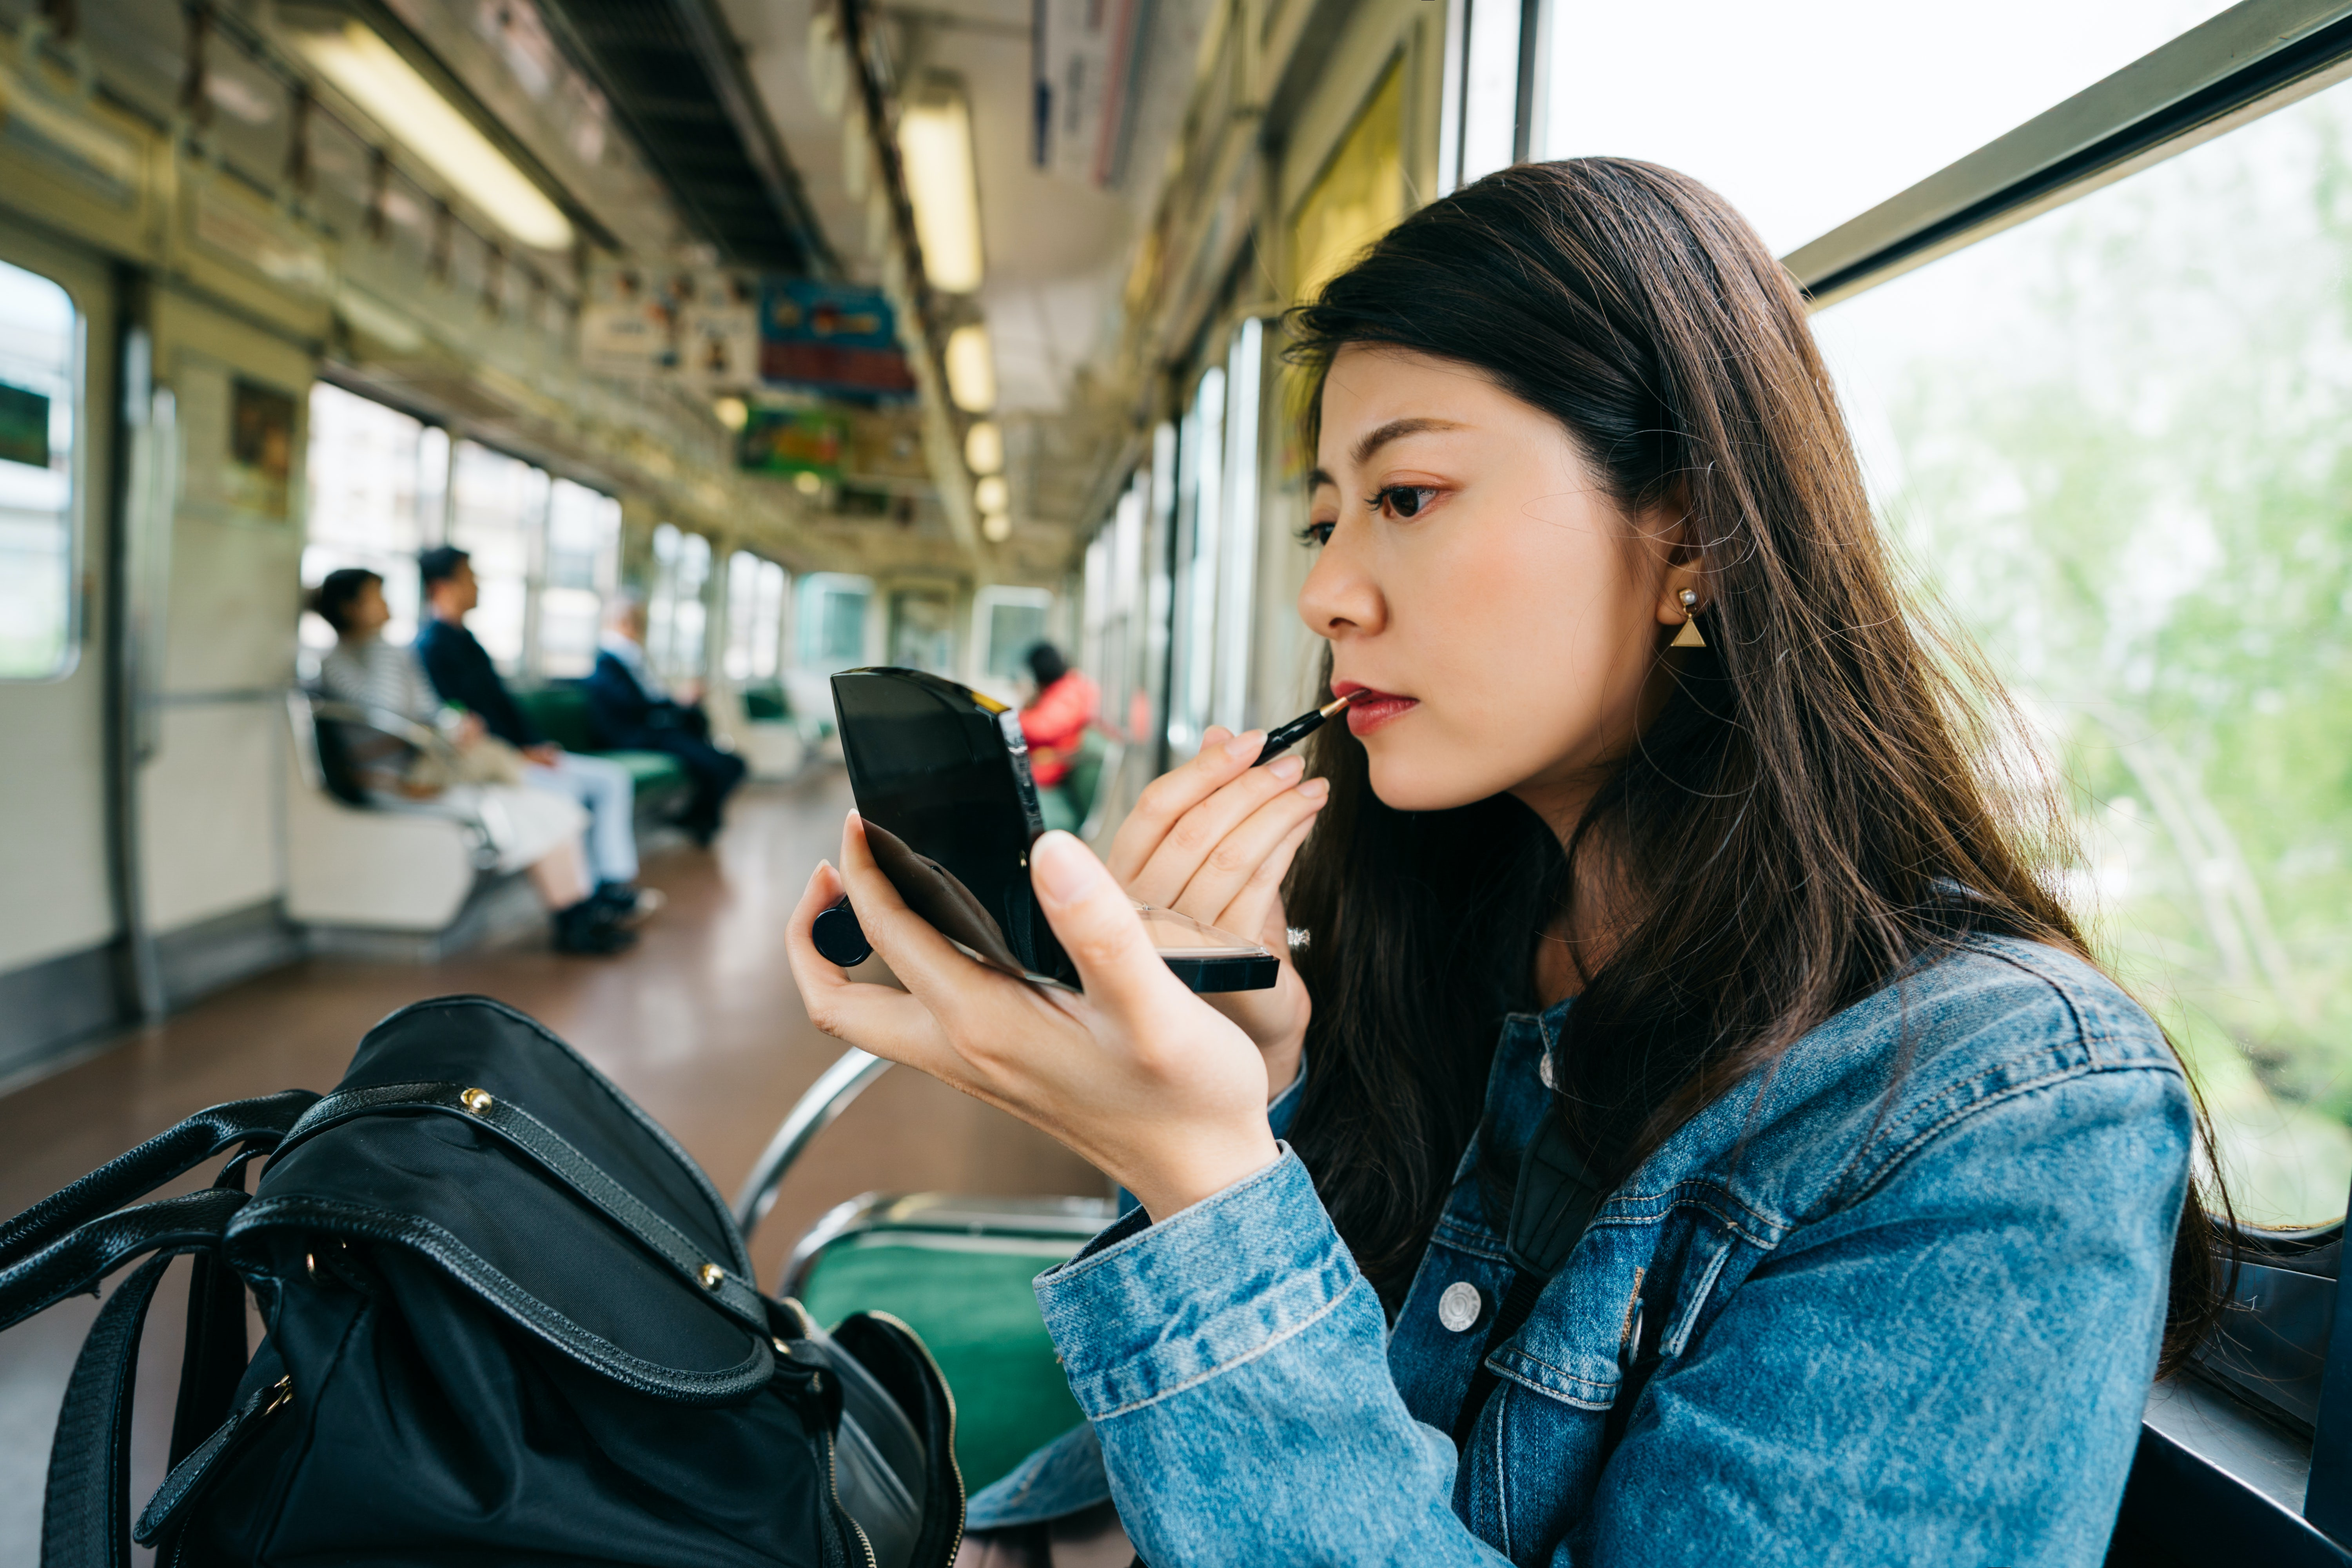 Why Japanese Millennials Are Buying Used Makeup